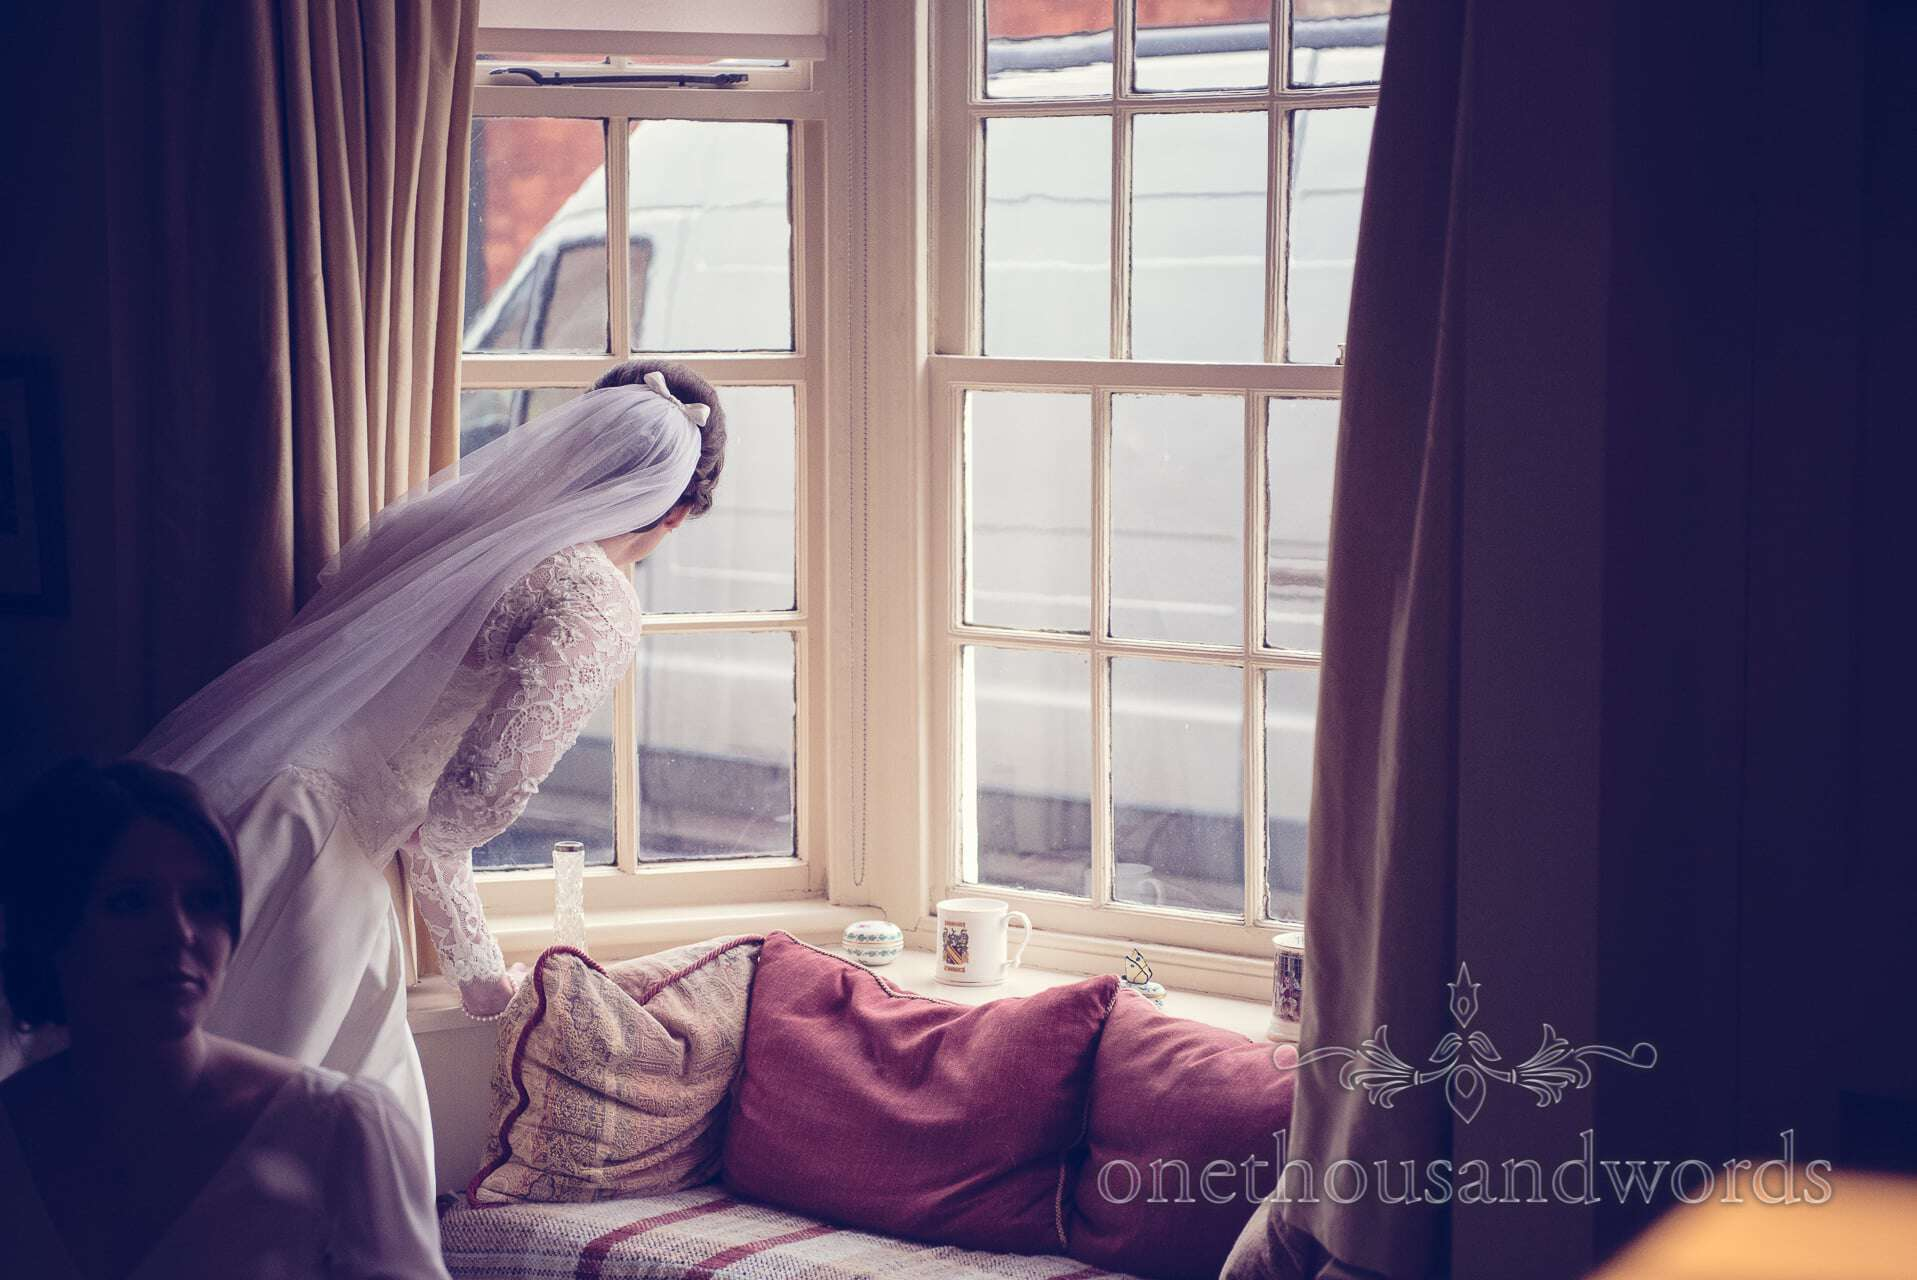 Bride looks out of window for wedding guests